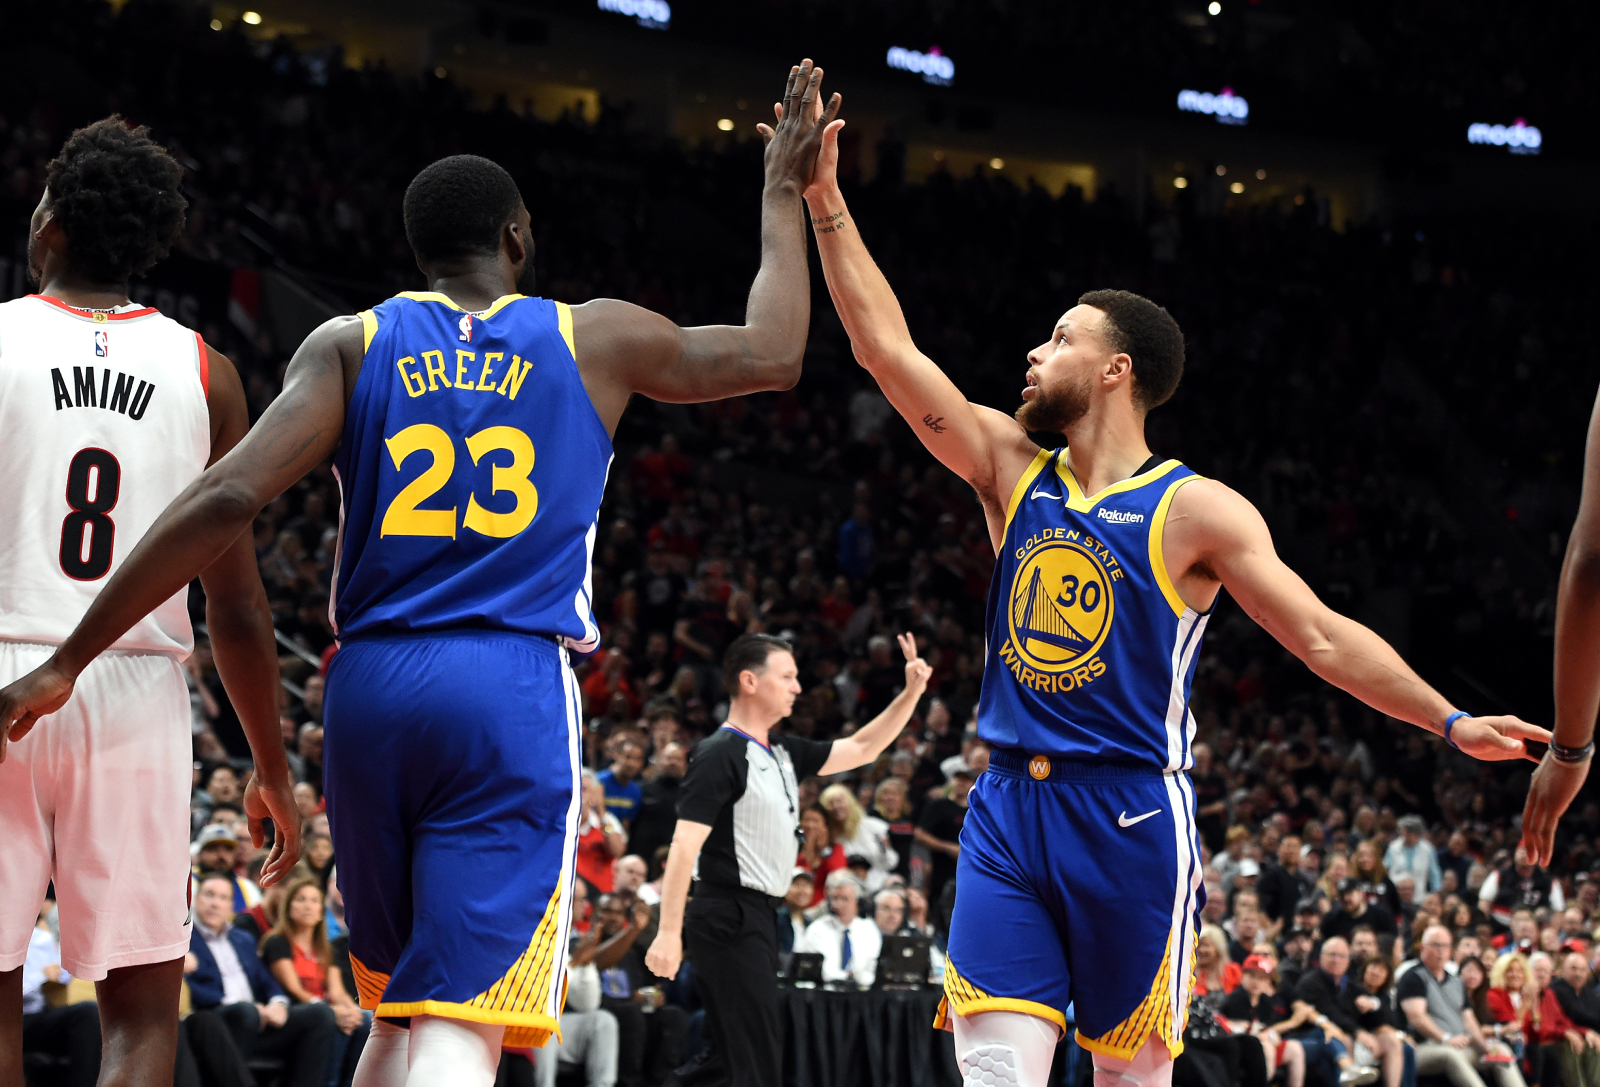 The Golden State Warriors should be pretty good again in 2020-21. So, what could their 2020-21 starting lineup and rotation look like?